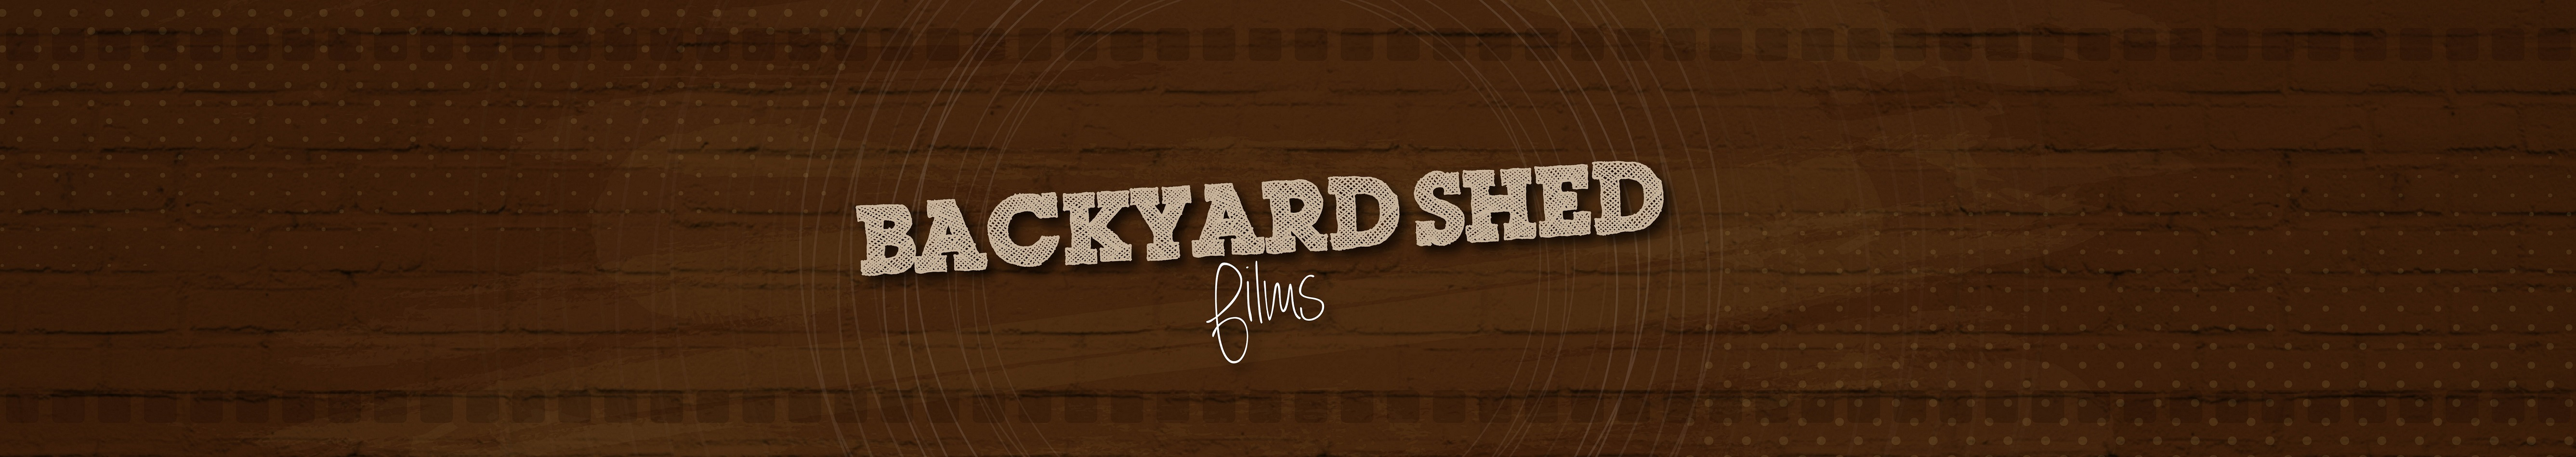 Video Production, Music Videos, Commercials, and Post-production | Backyard Shed Films